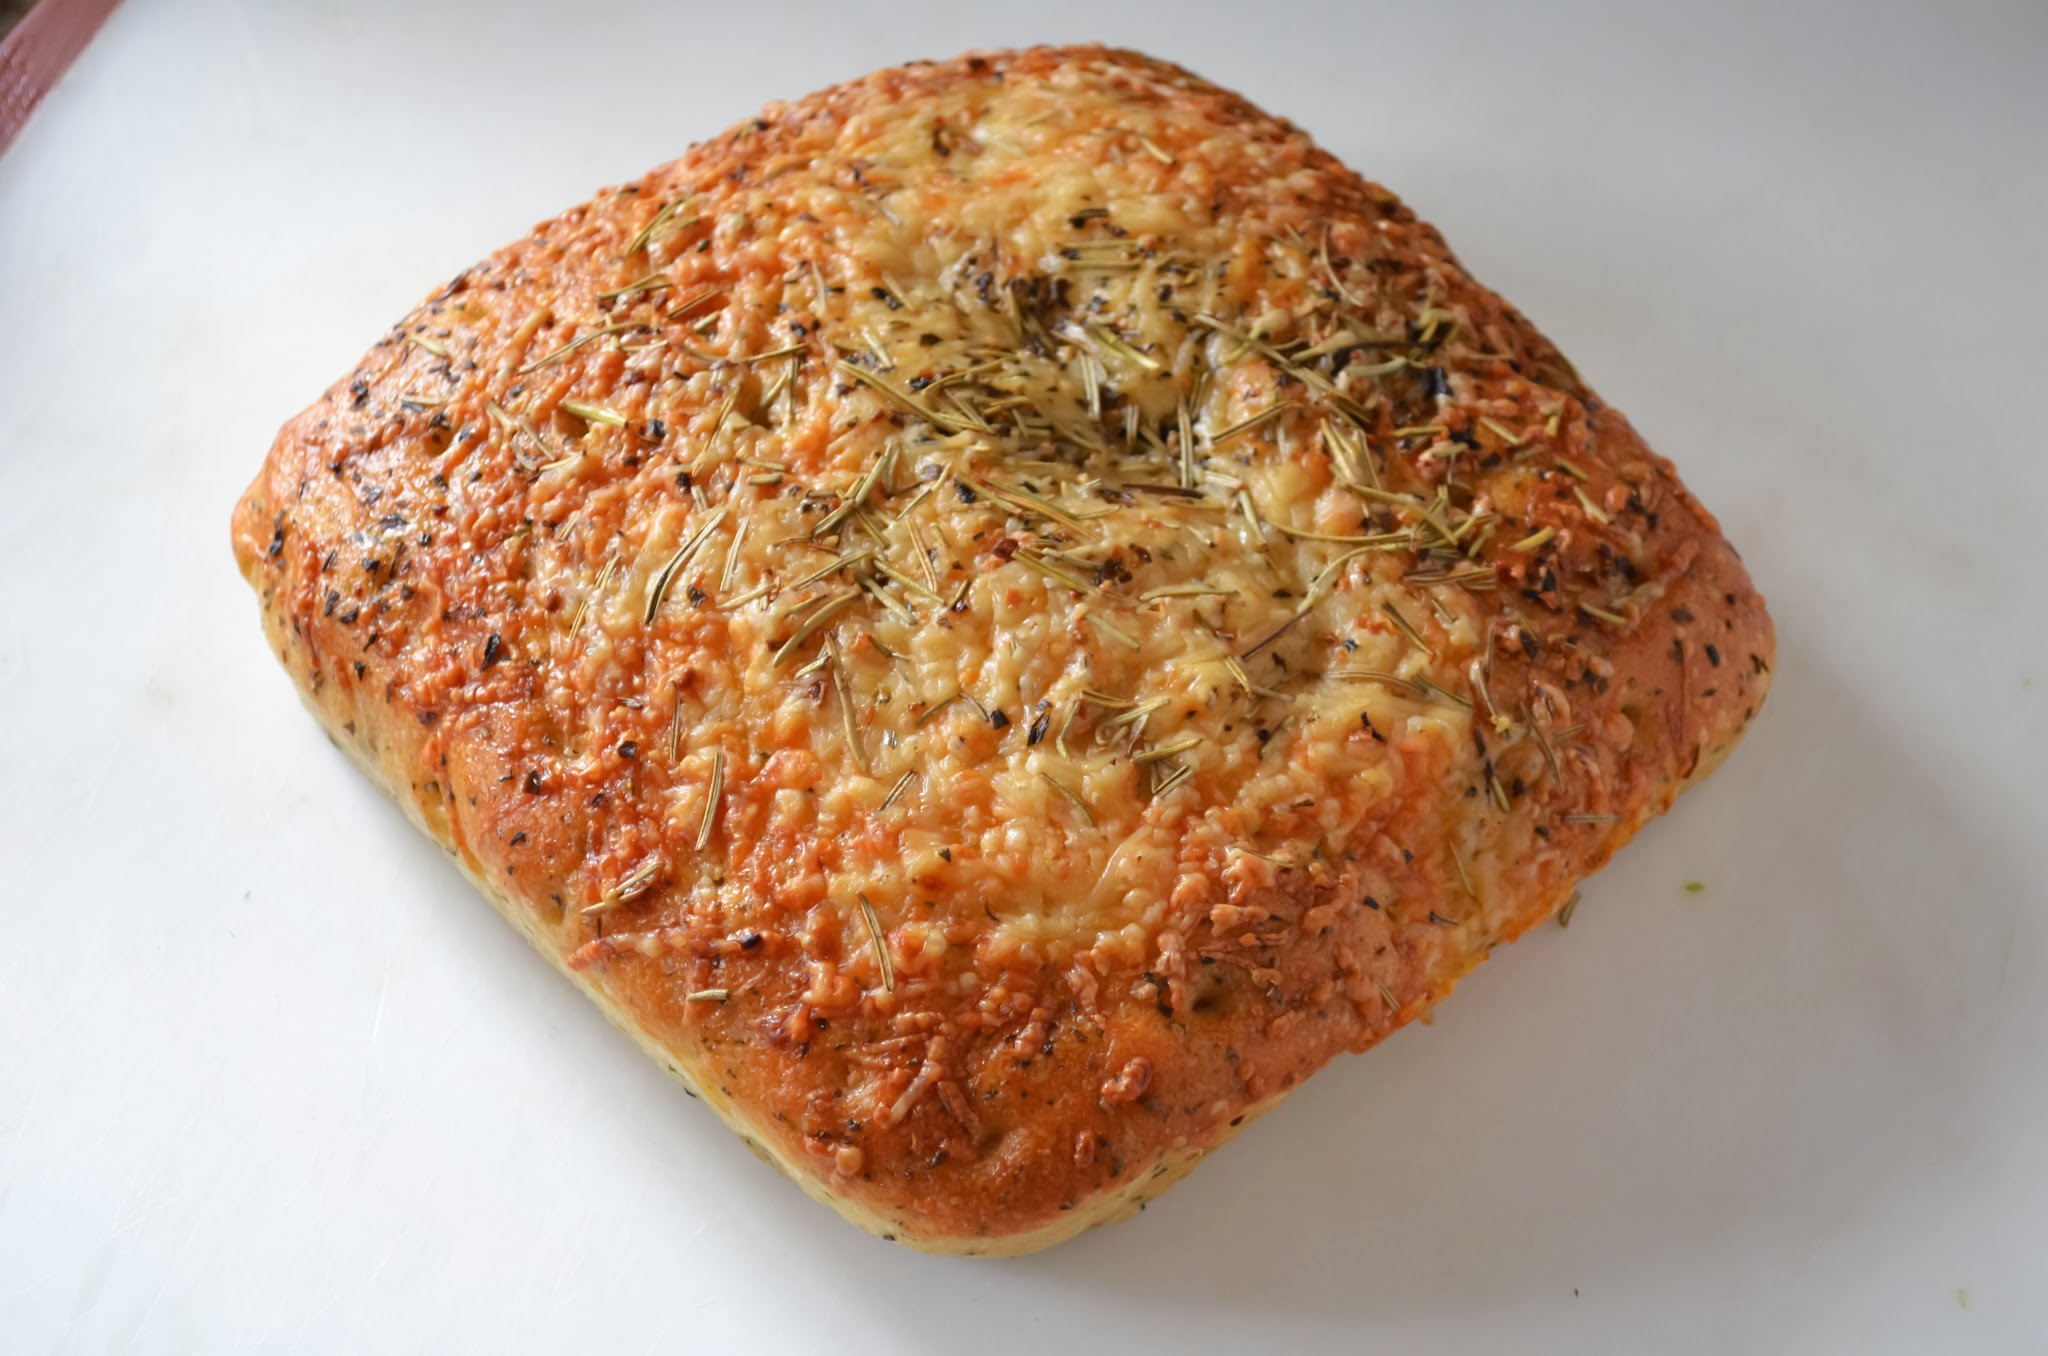 A loaf of focaccia bread on a white cutting board.